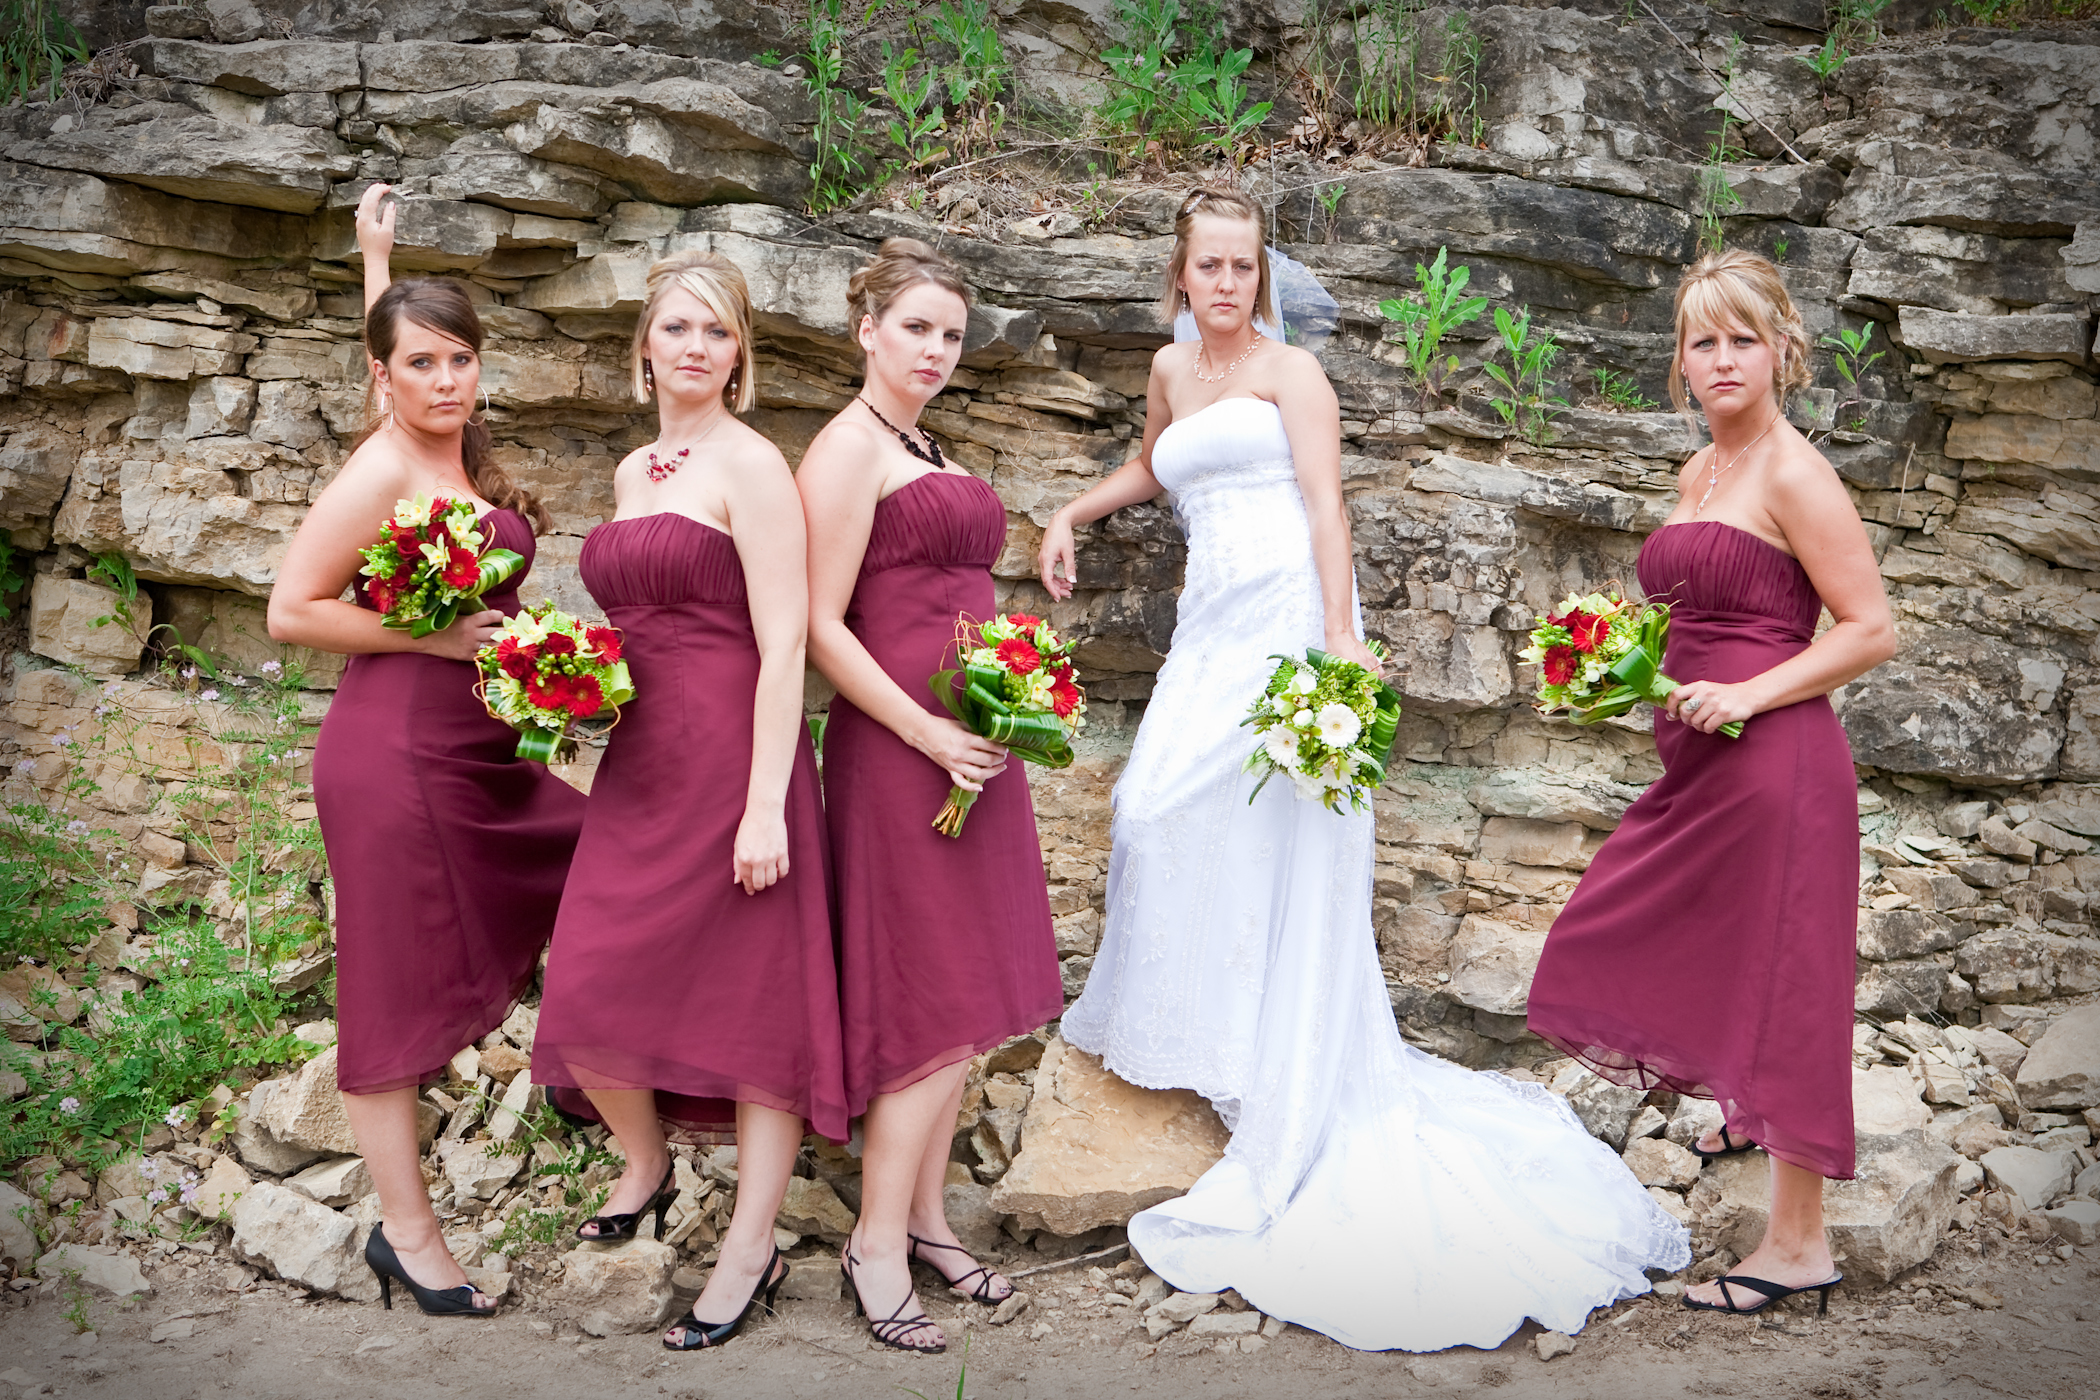 Bridesmaids, Bridesmaids Dresses, Fashion, Summer, Bride, Outdoor, Portraits, Group, Photos, Pheifer photography llc, Summer Wedding Dresses